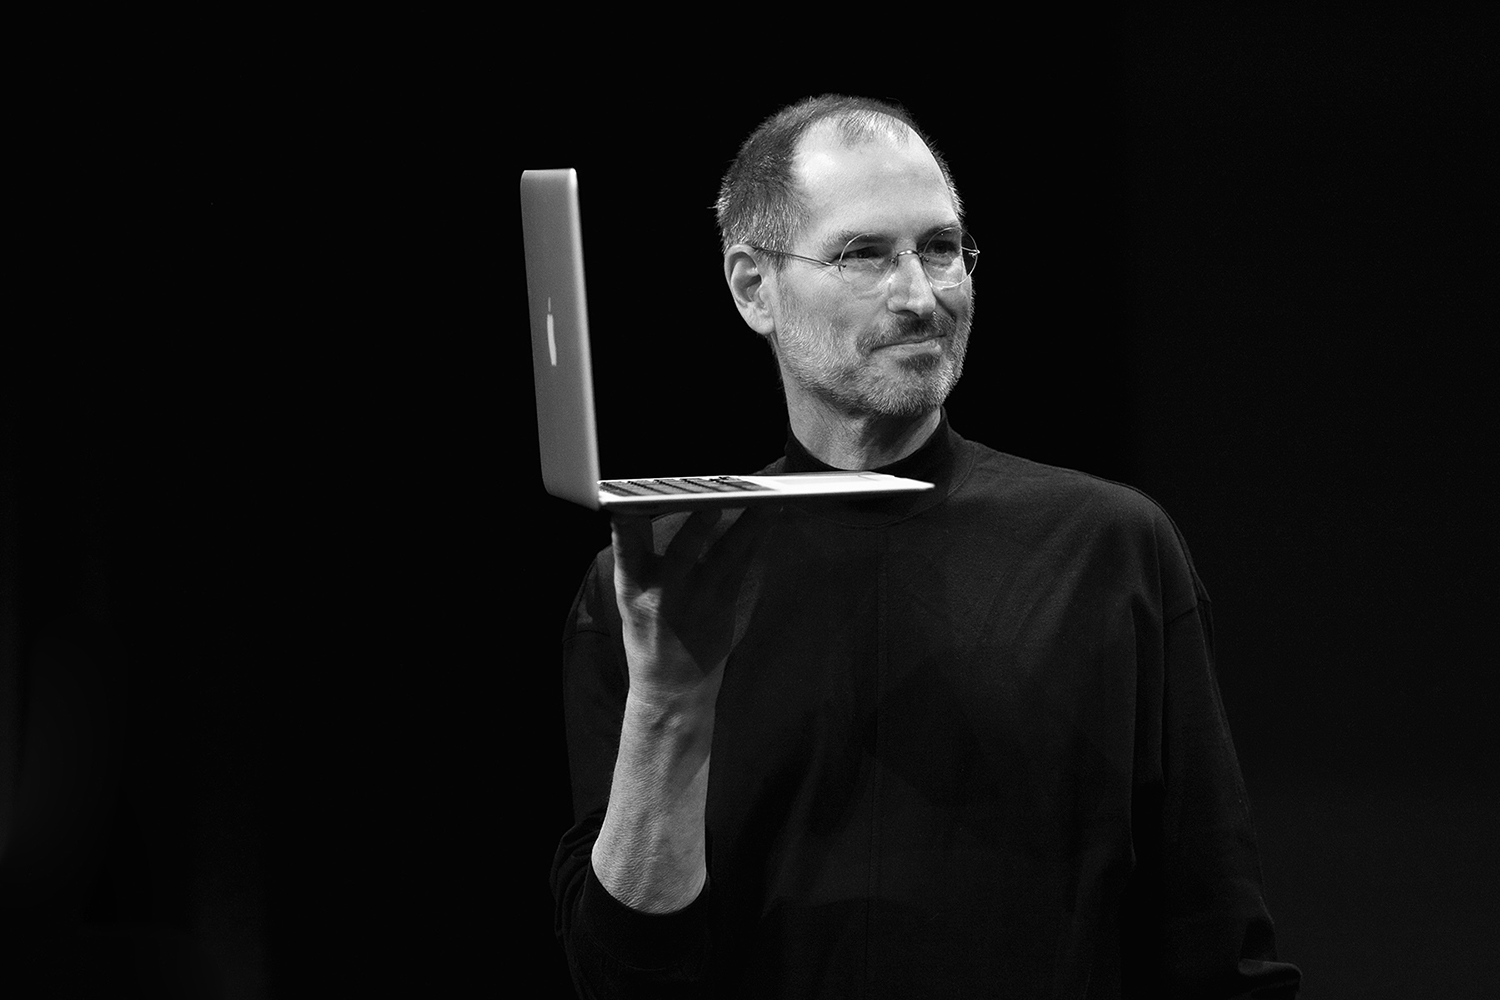 steve-jobs-old-laptop-H1